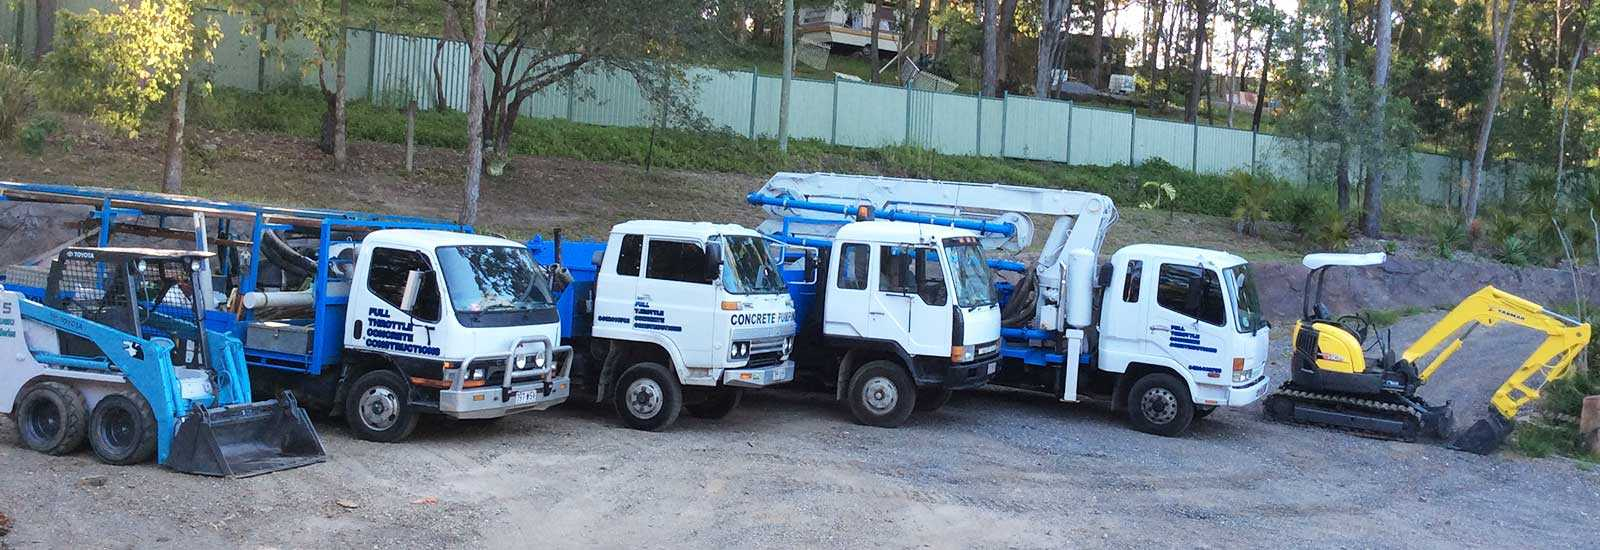 Full Throttle Concrete constructions - Machinery and Equipment Concrete Machines